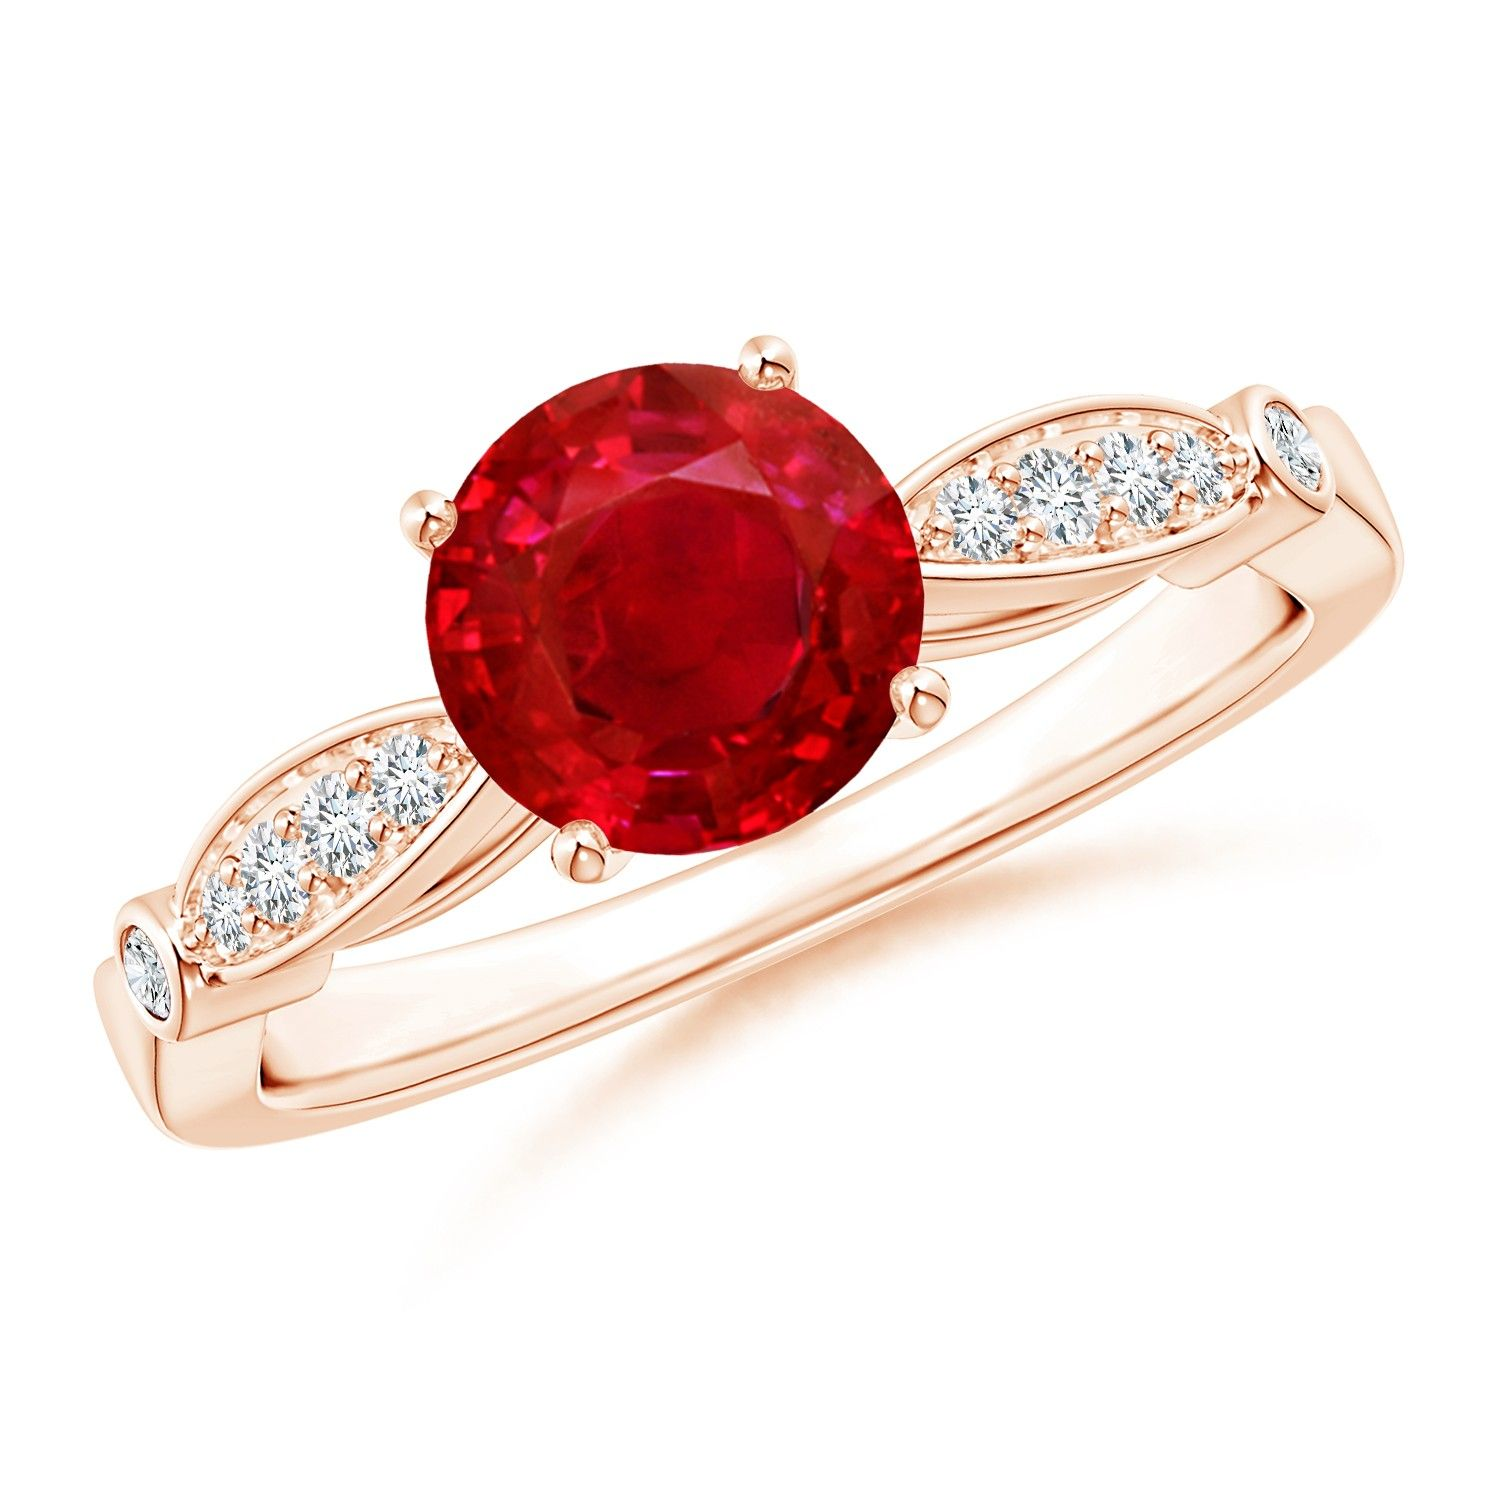 Angara Round Ruby Solitaire Ring with Milgrain Detailing QH10X